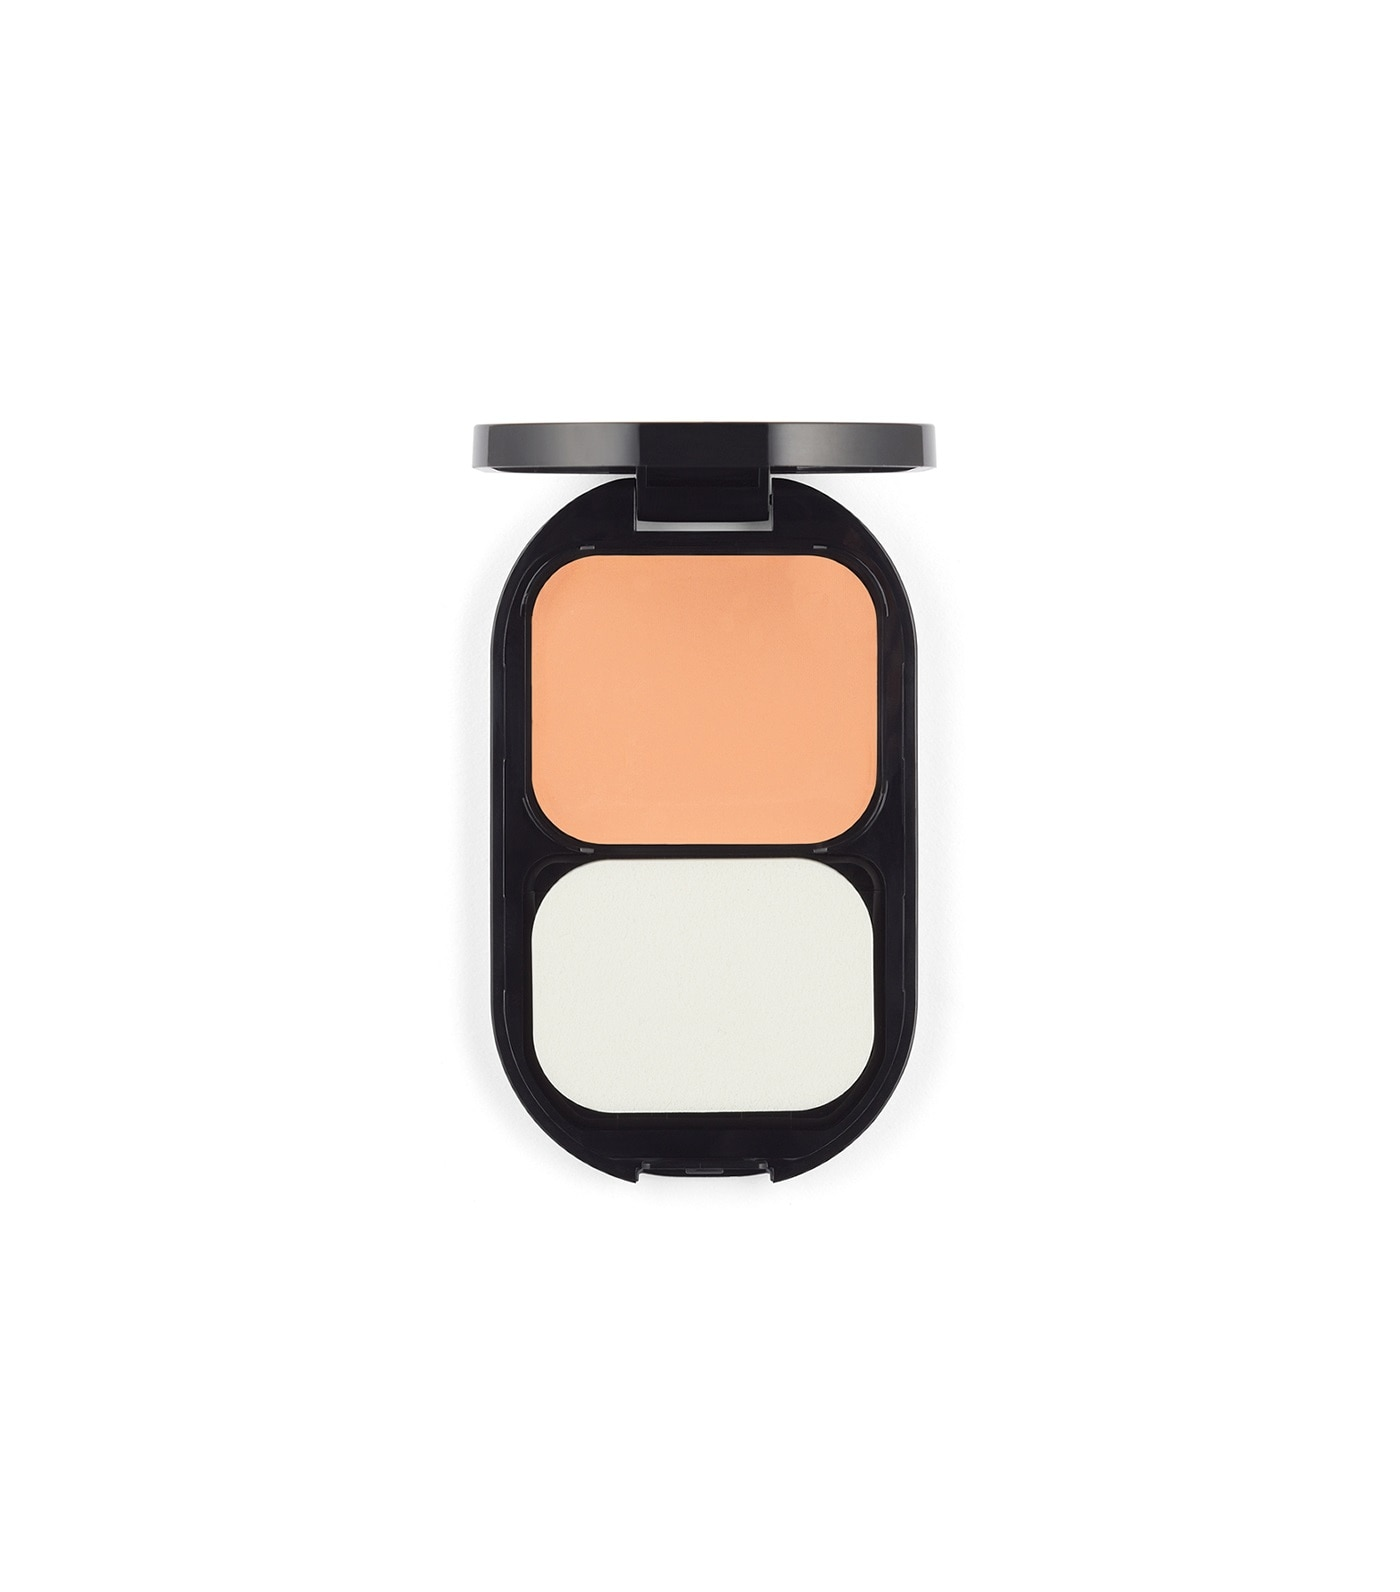 MAX FACTORFacefinity Compact Foundation Bronze #007 10g,FoundationWATSONS EMP. DISC.